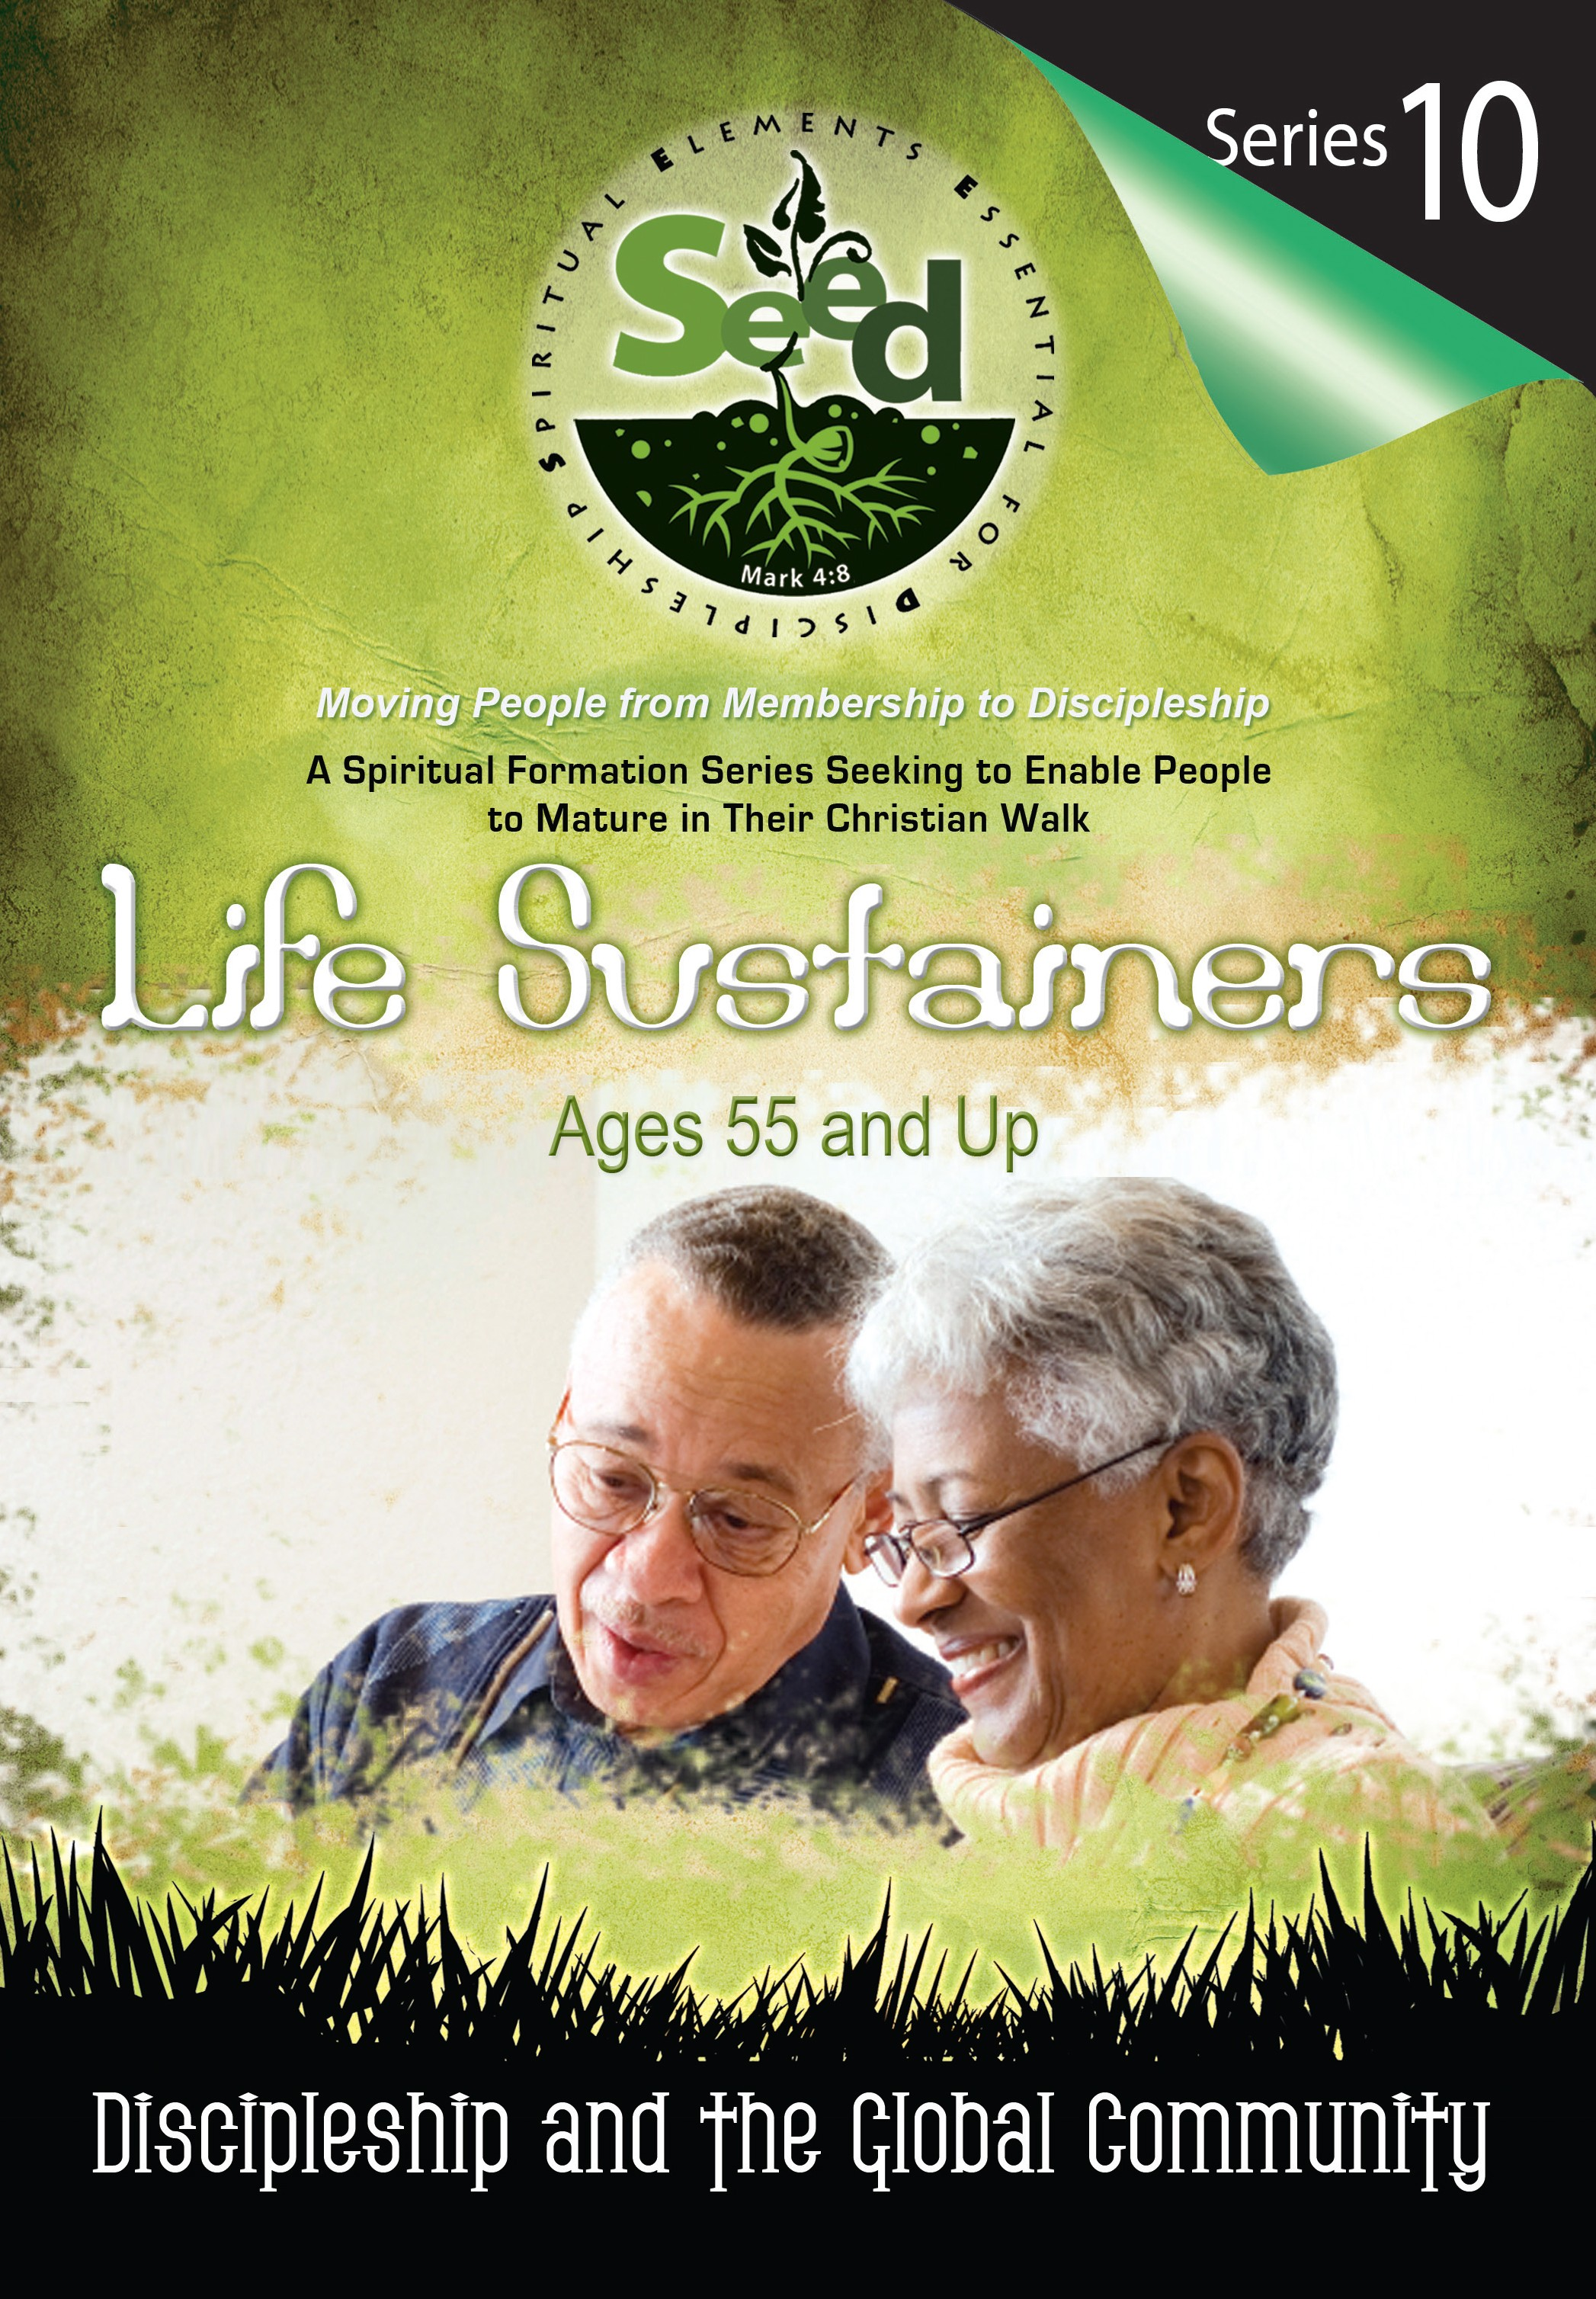 SEED Life Sustainers (Ages 55 and Up) Series 10: Discipleship and the Global Community